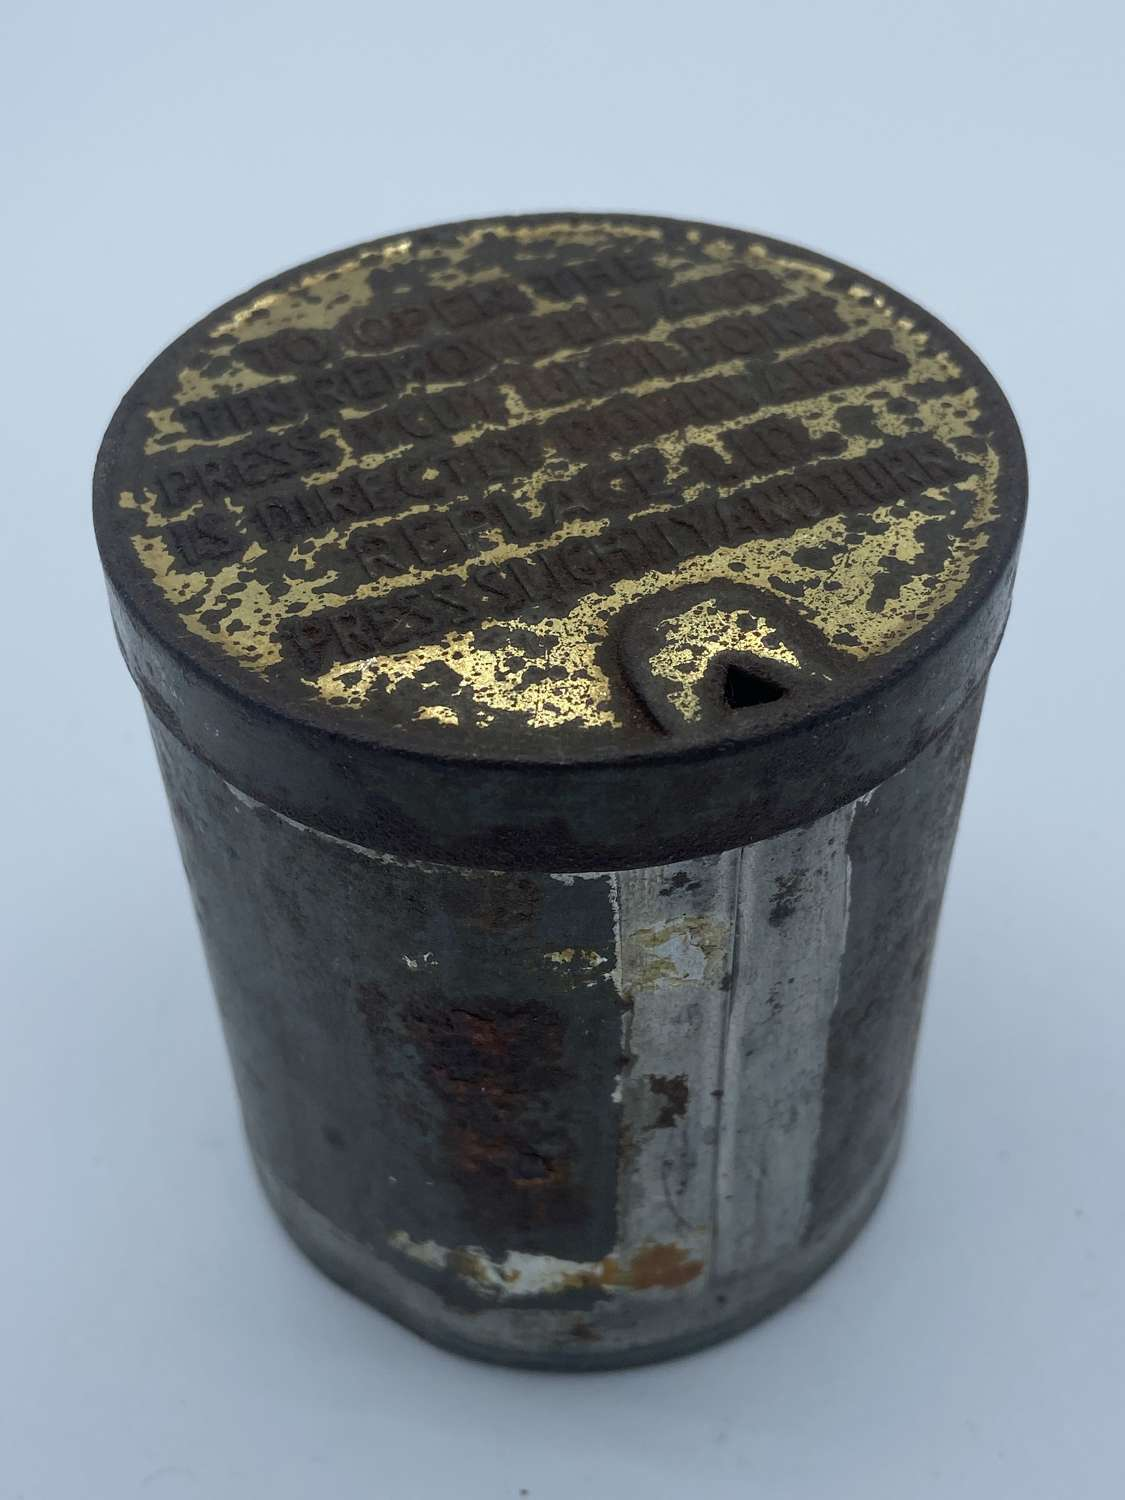 WW2 NAAFI Navy Army & Air Force Circular Empty Cigarette Ration Tin